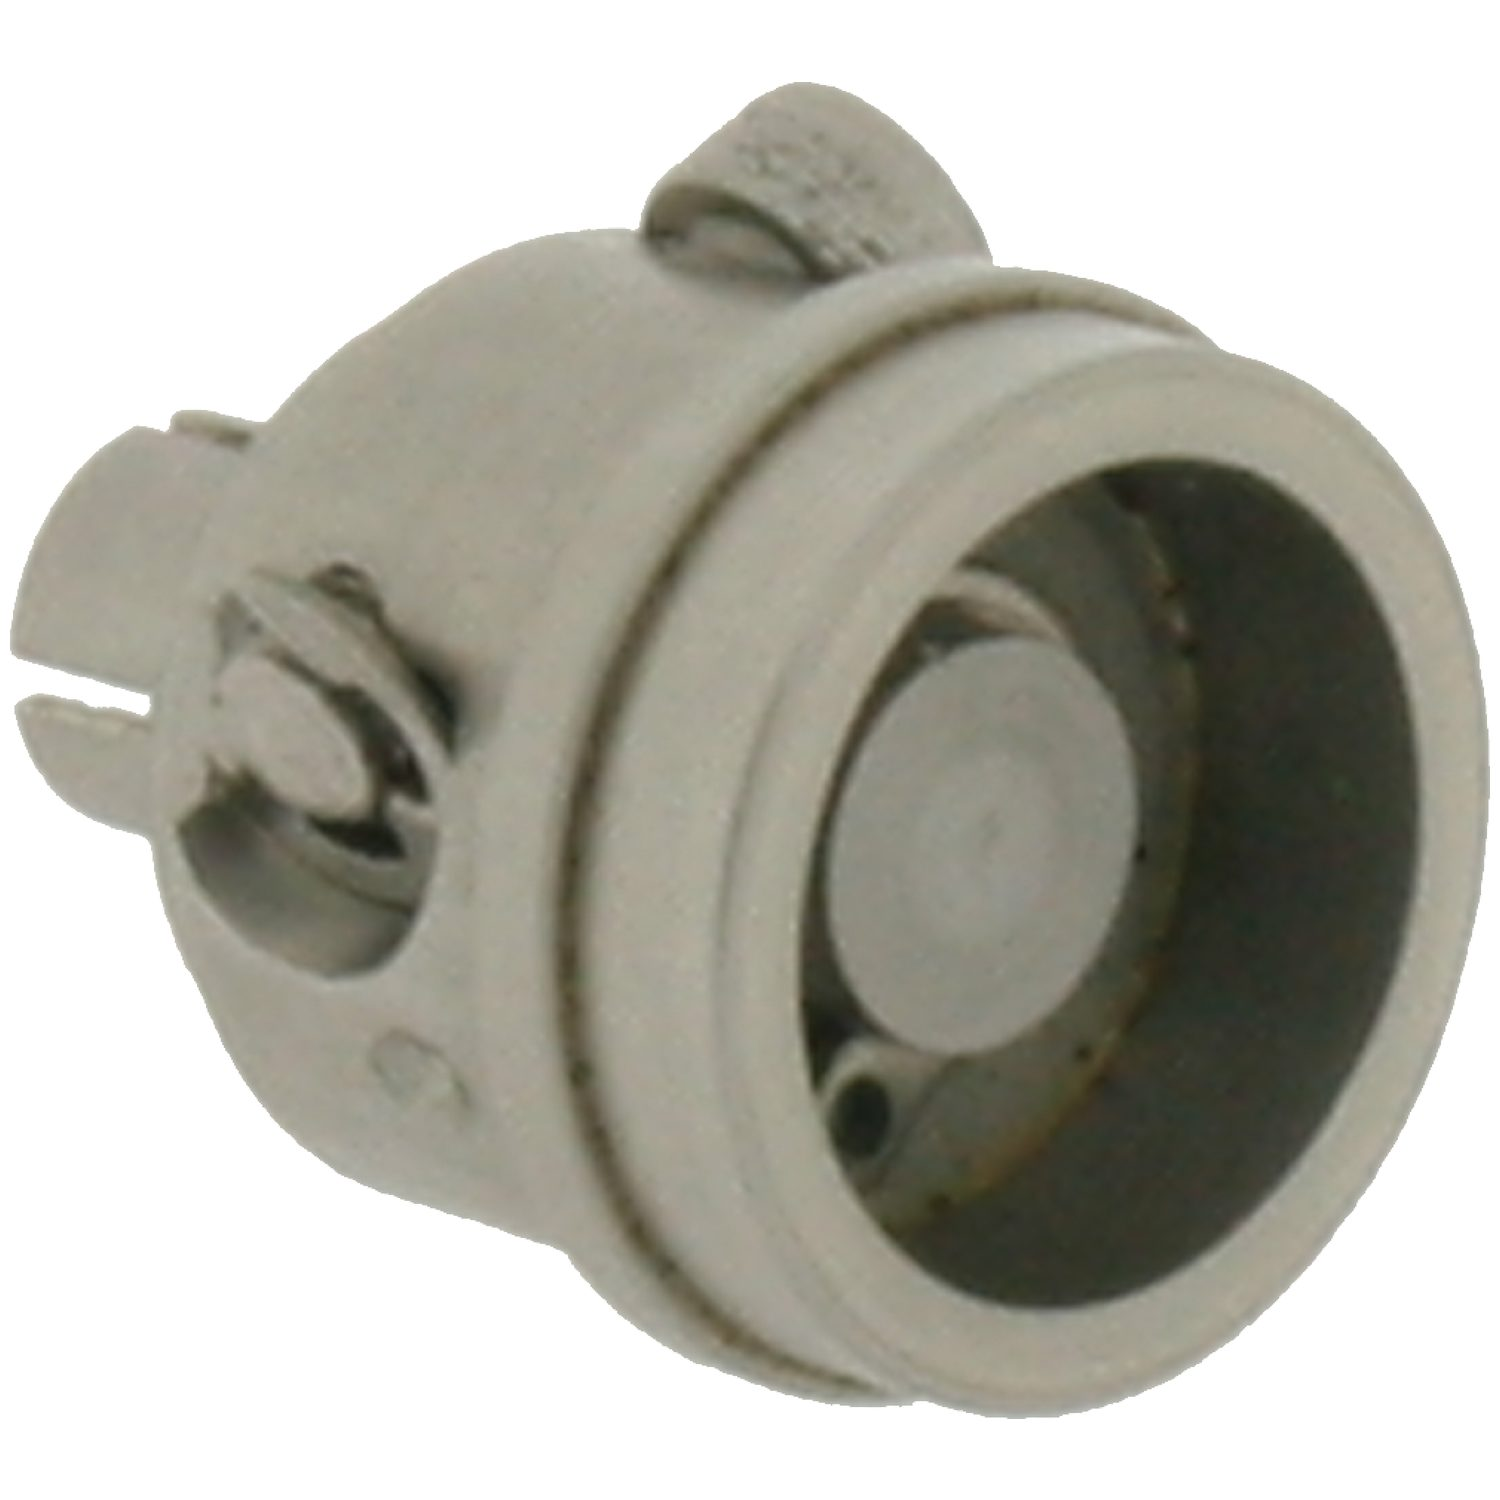 R3241 - Phase Adjustable Hub